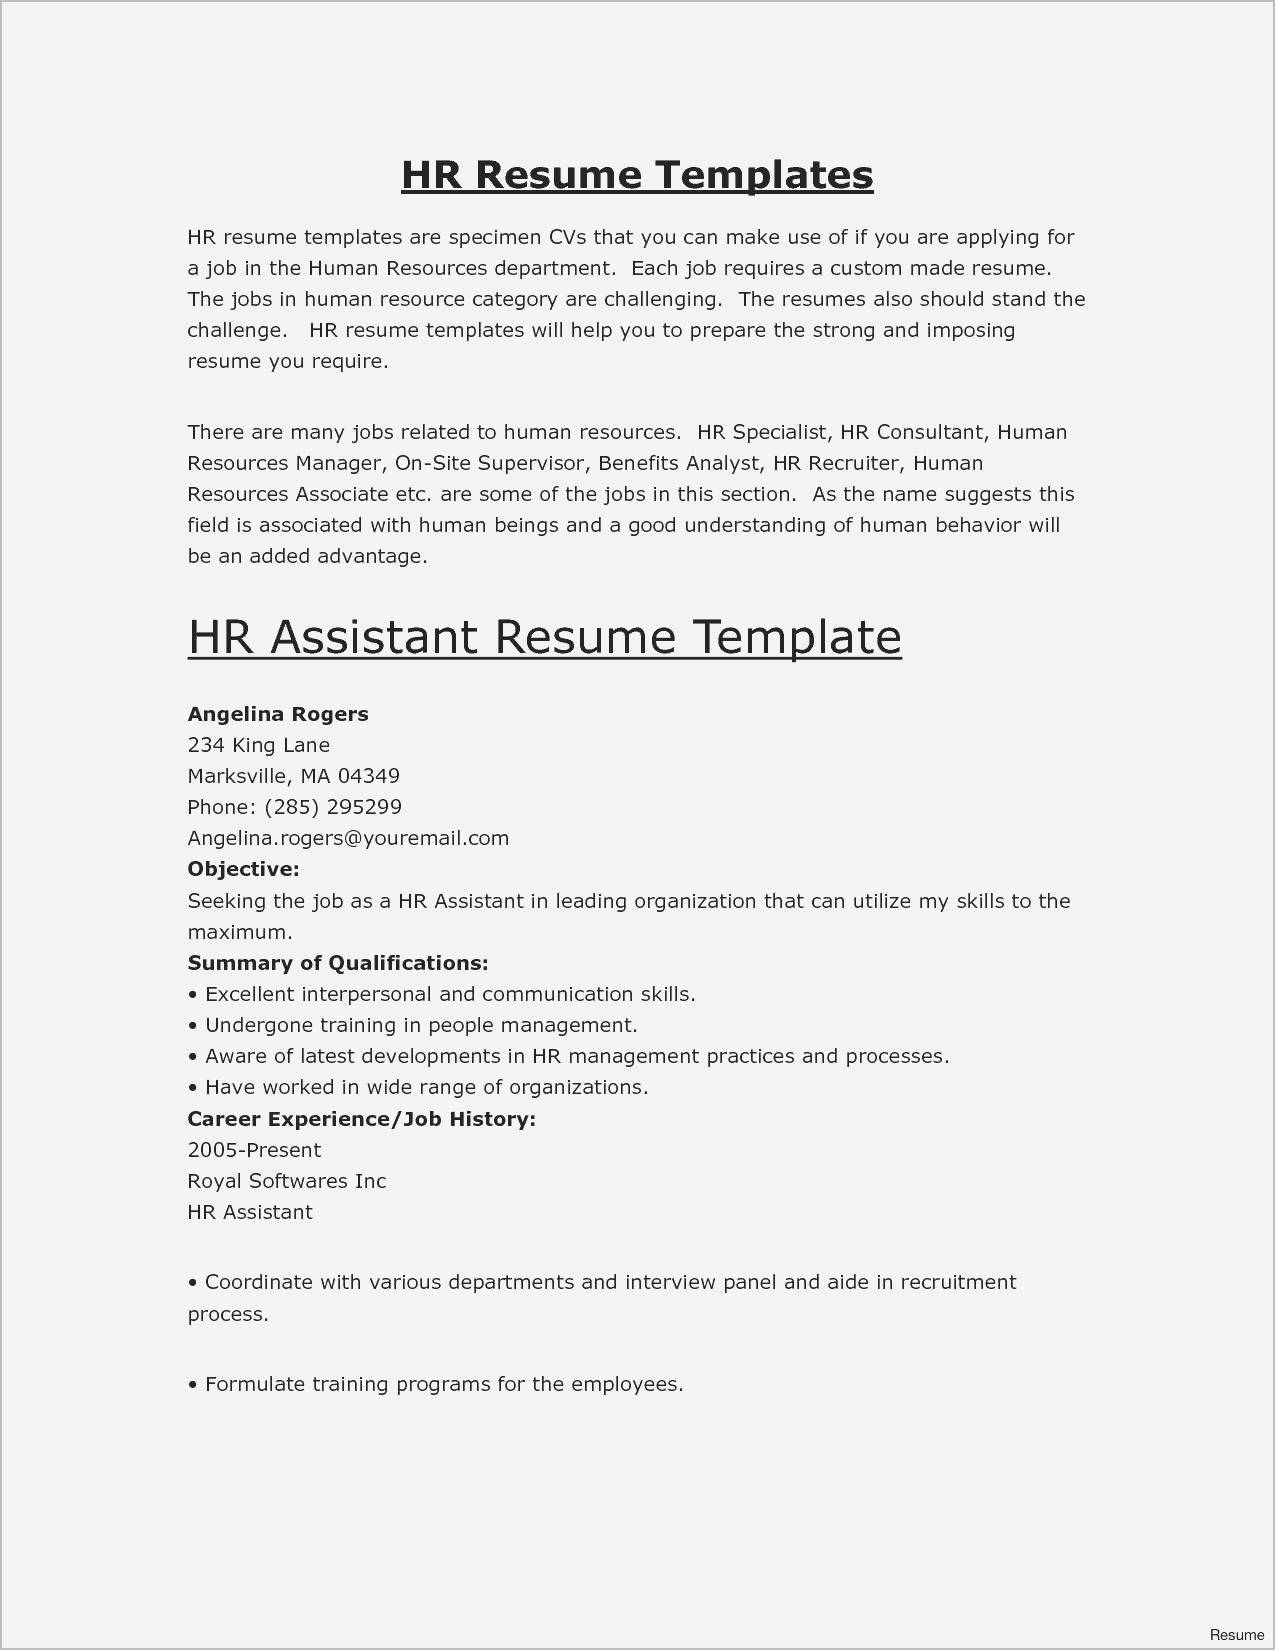 Resume with Picture Template - ¢Ë†Å¡ Change Template Powerpoint Change Powerpoint Template Best Ppt